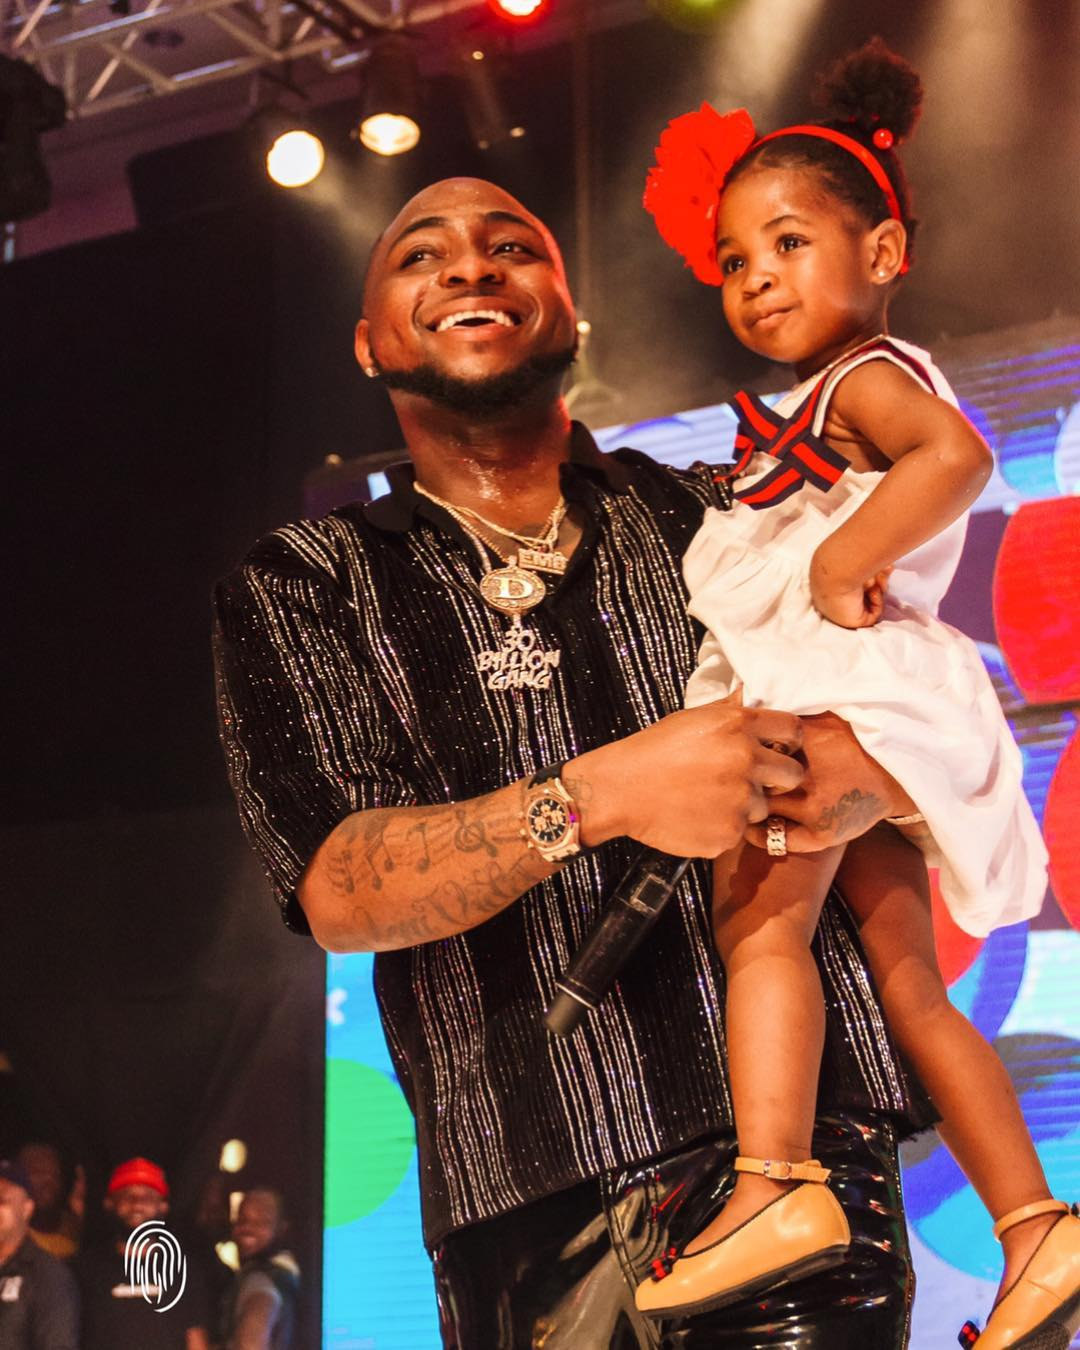 #30BillionConcert made 500 Million Naira - Davido